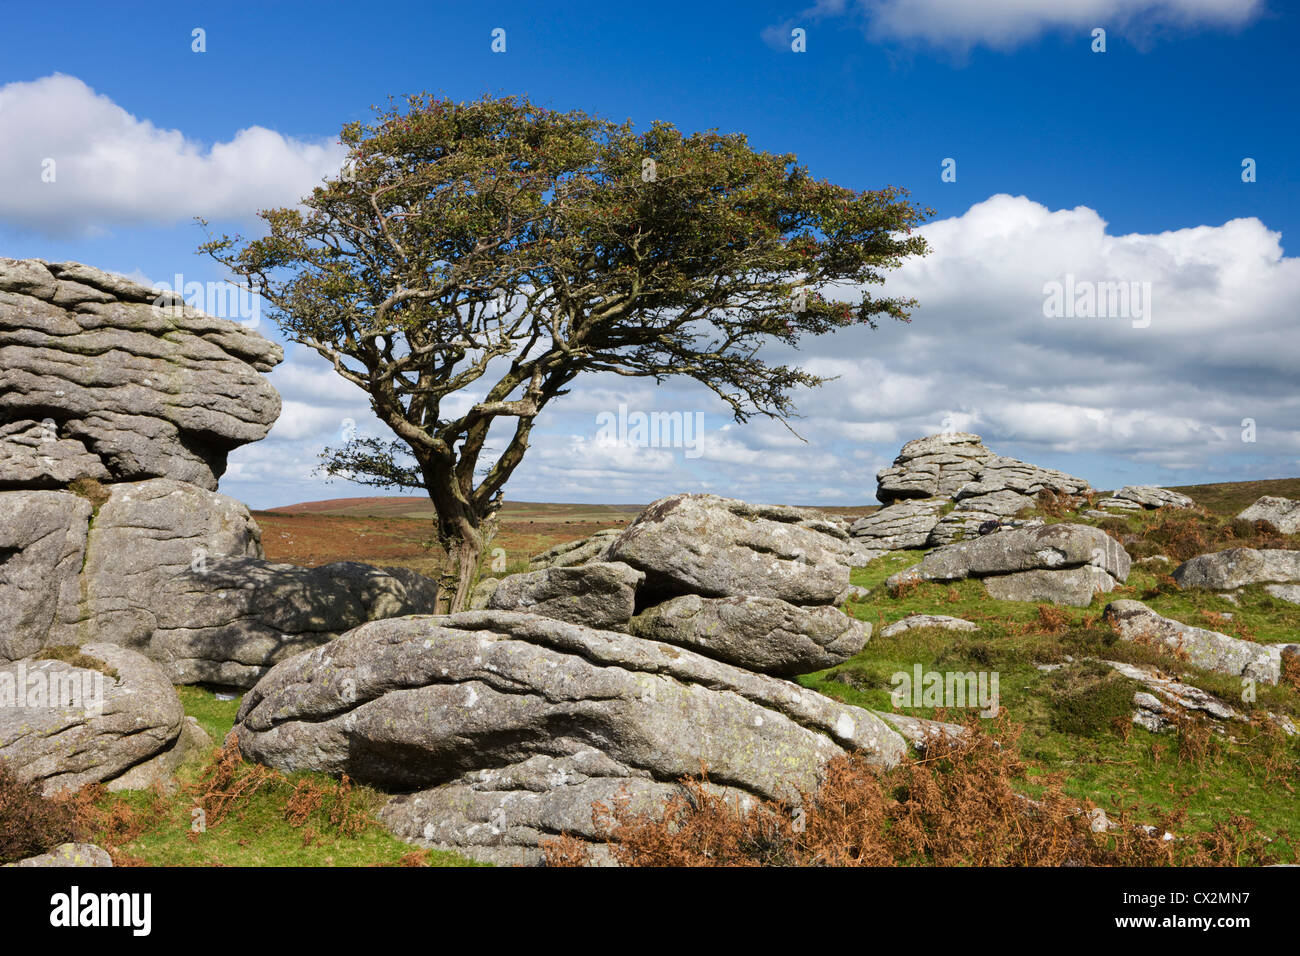 Hawthorn tree and granite outcrop, Saddle Tor, Dartmoor, Devon, England. Autumn (October) 2010. - Stock Image